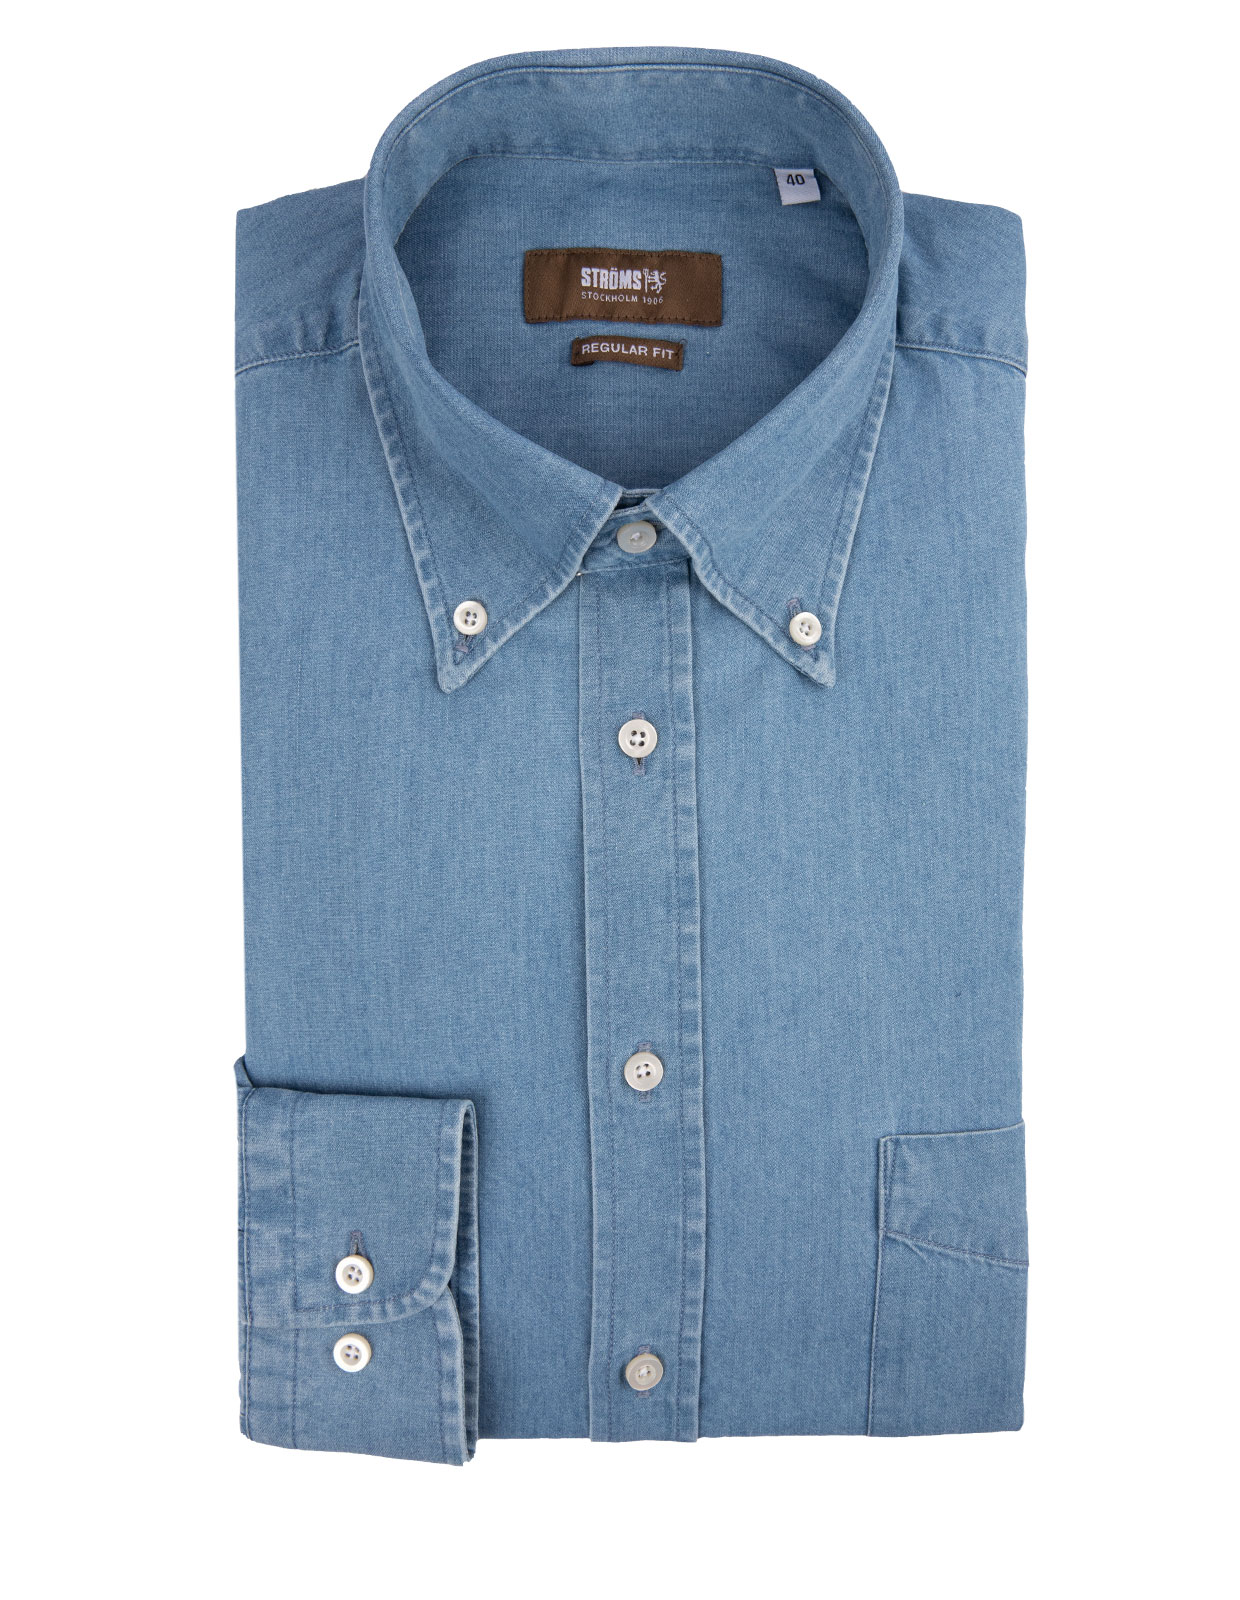 Regular Fit Button Down Denim Shirt Jeans Blue